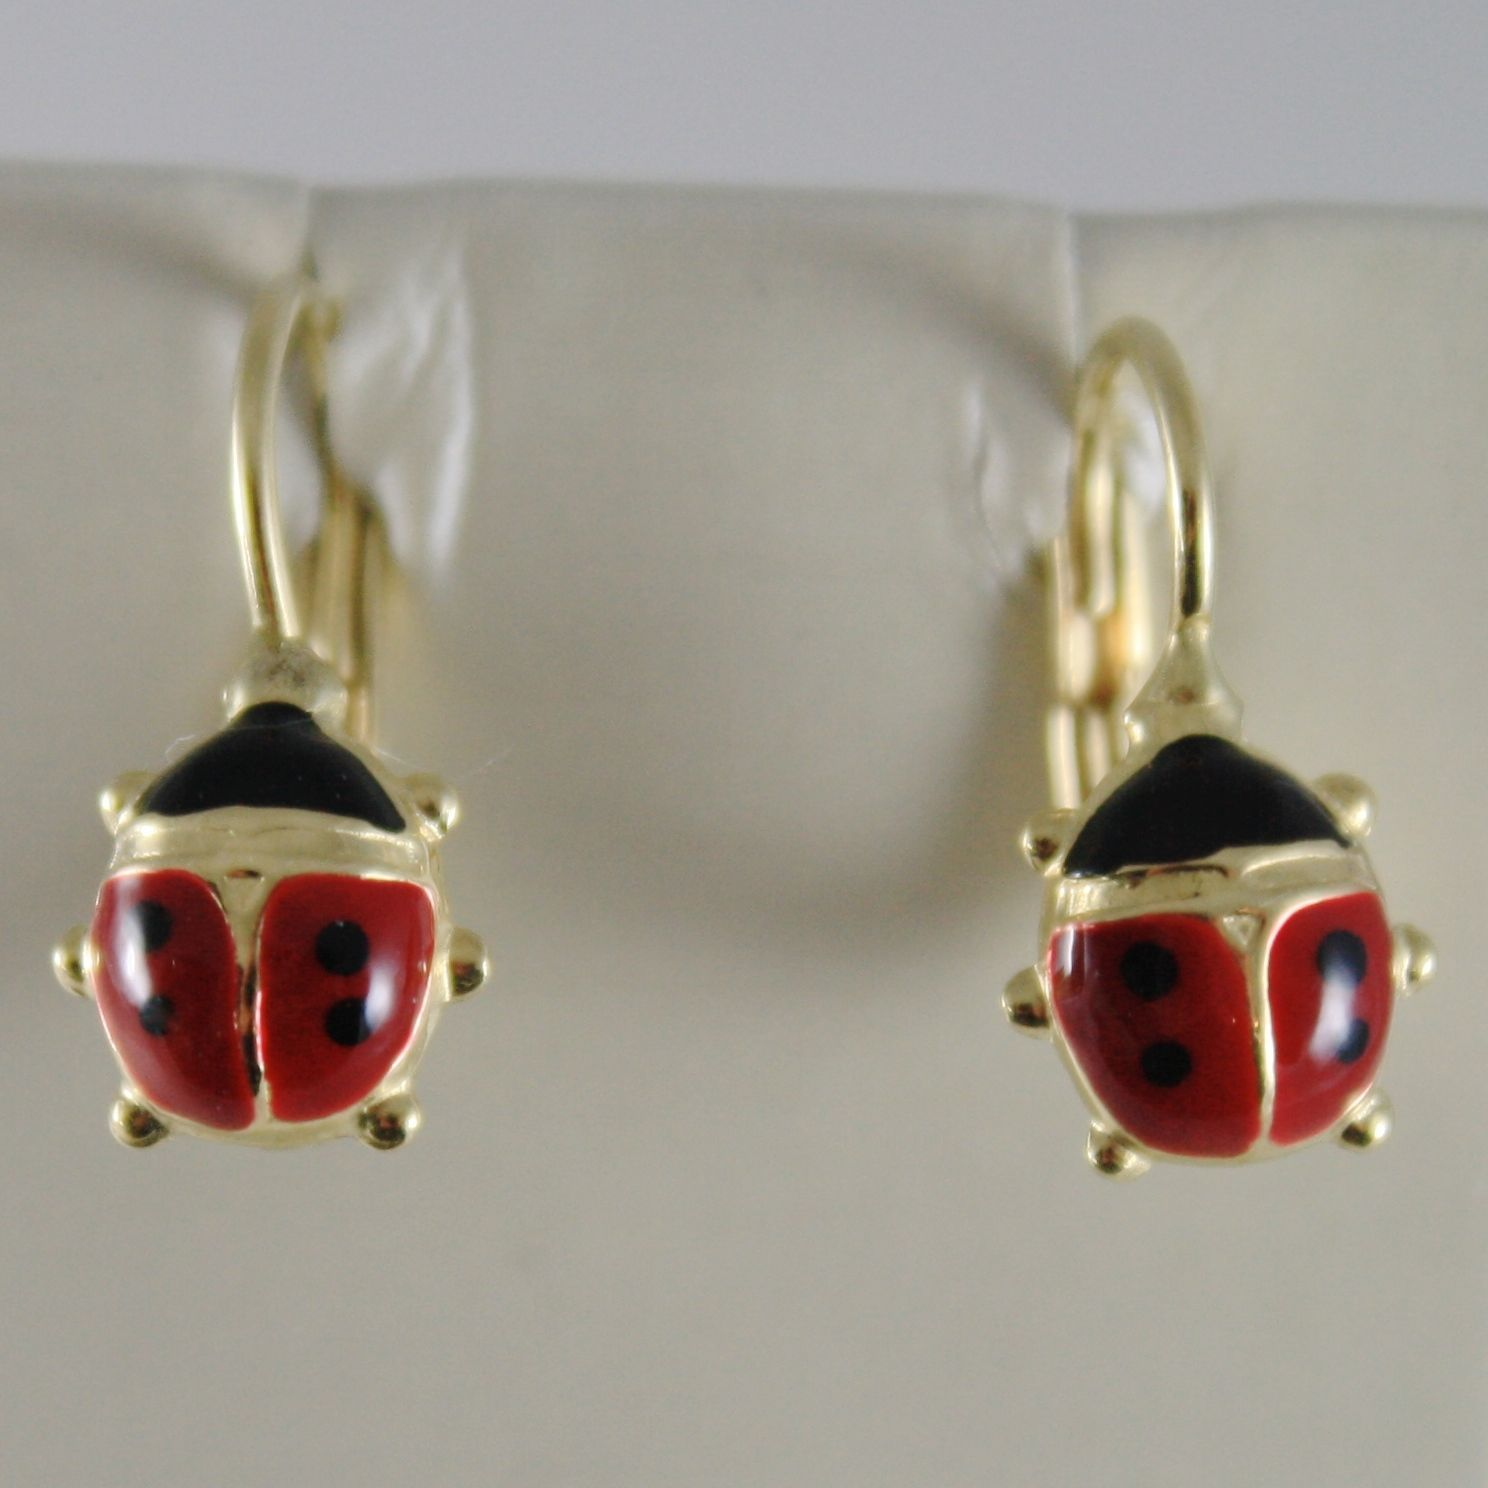 18K YELLOW GOLD PENDANT EARRINGS GLAZED LADYBIRD LADYBUG FOR KIDS MADE IN ITALY